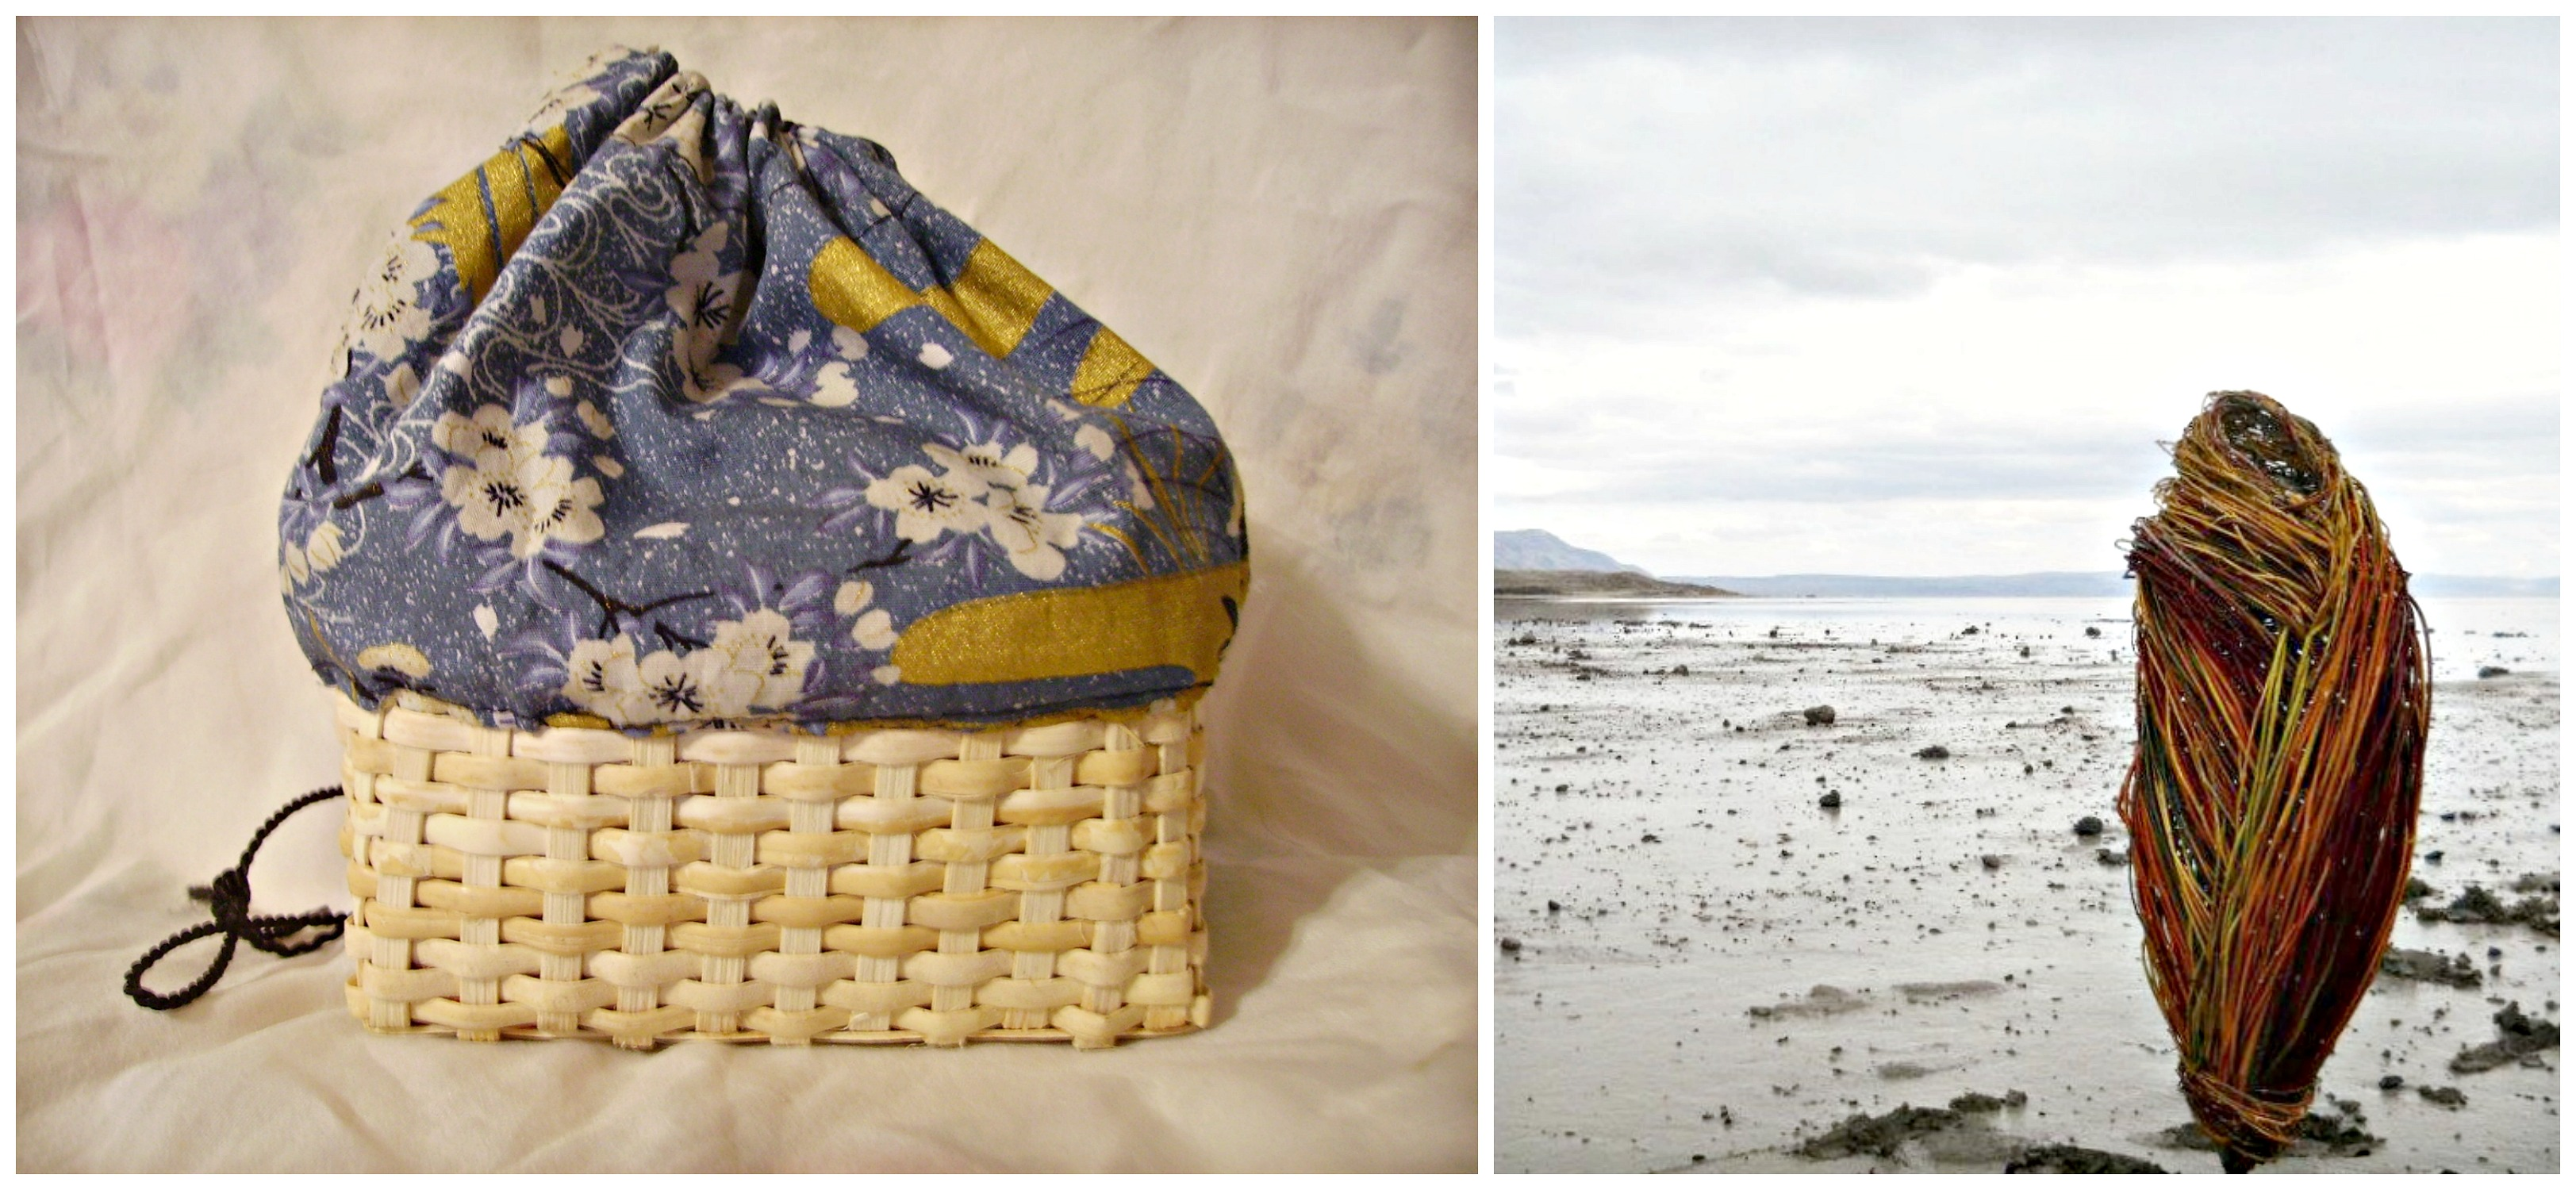 Kinchaku Kago: Japanese Basket Purse with Donna Crispin